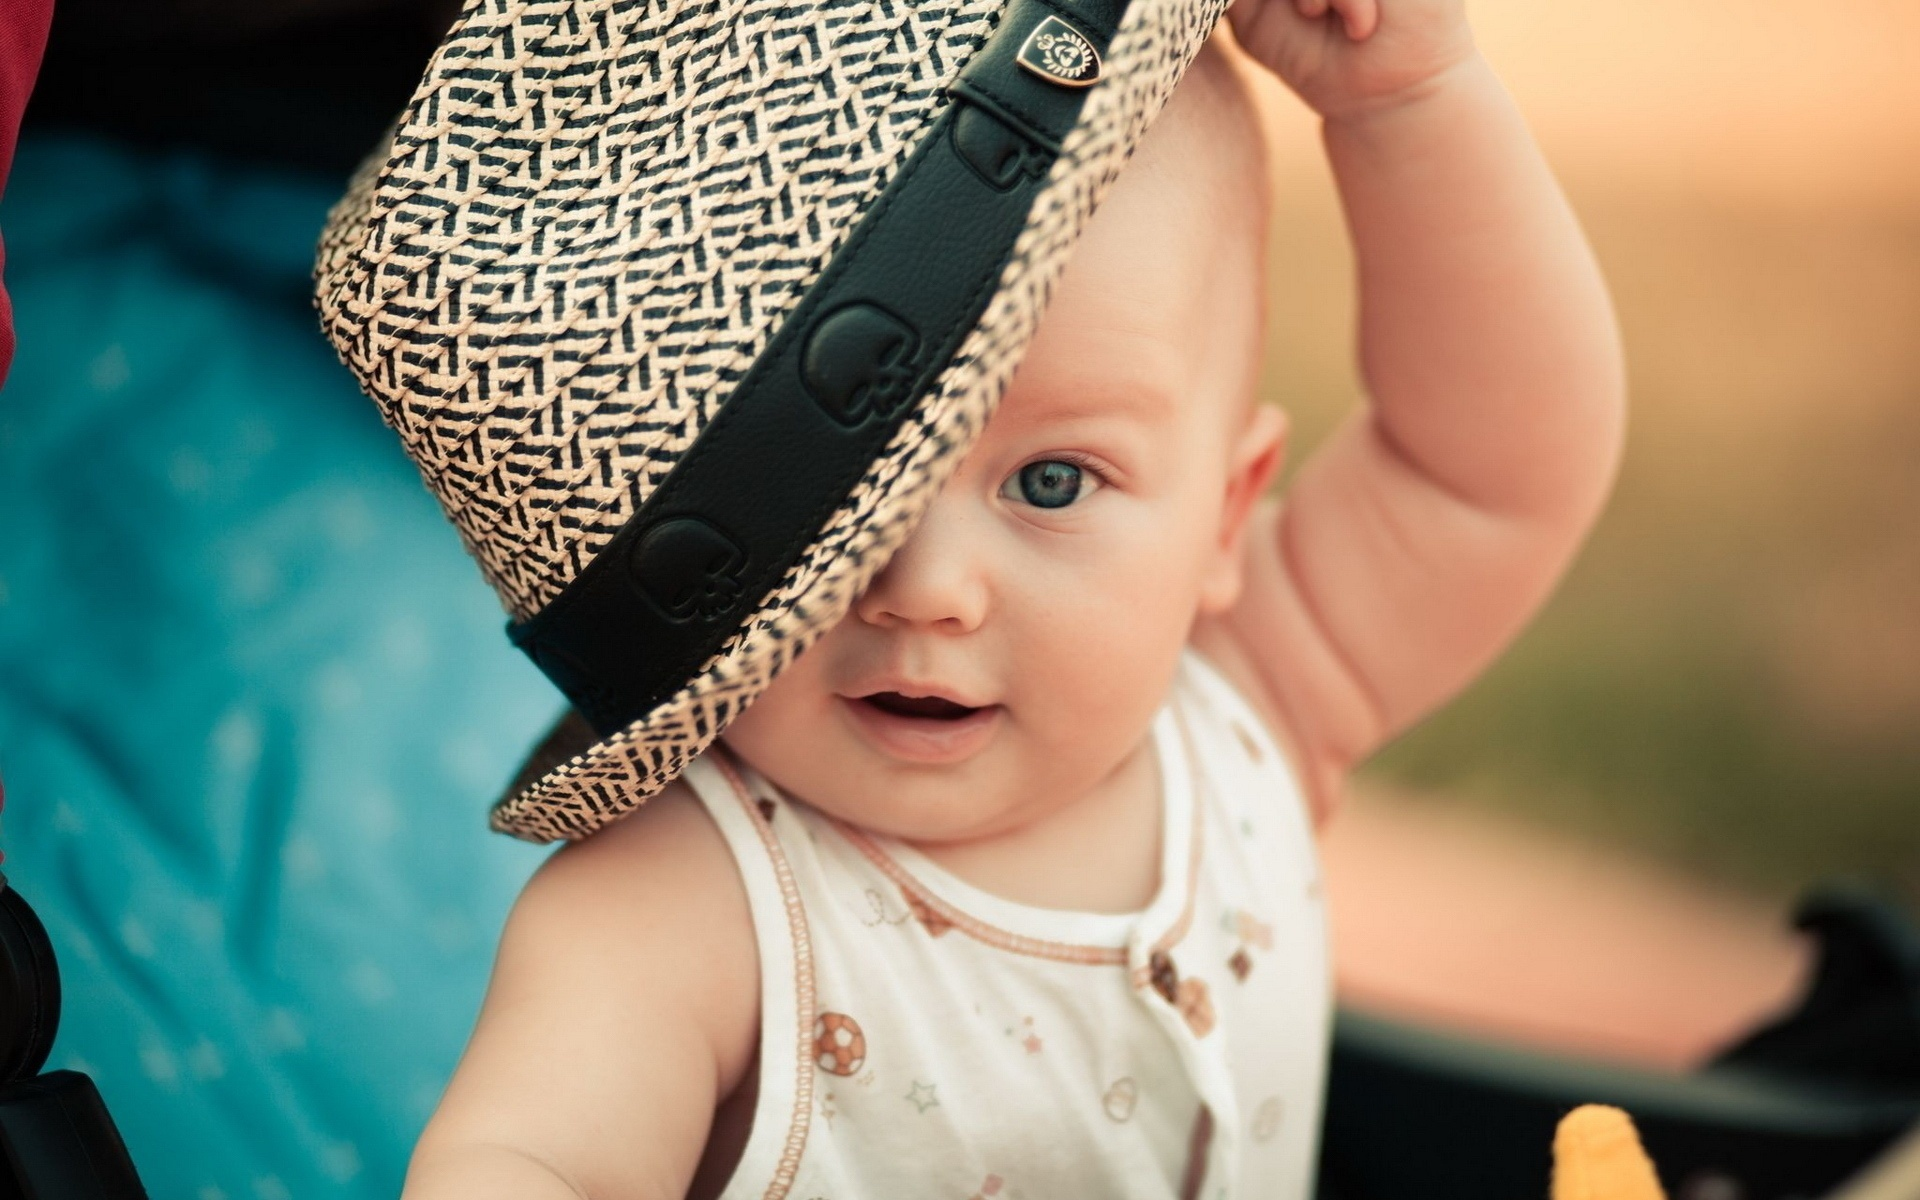 Fashionable hat baby 1920 x 1200 download close